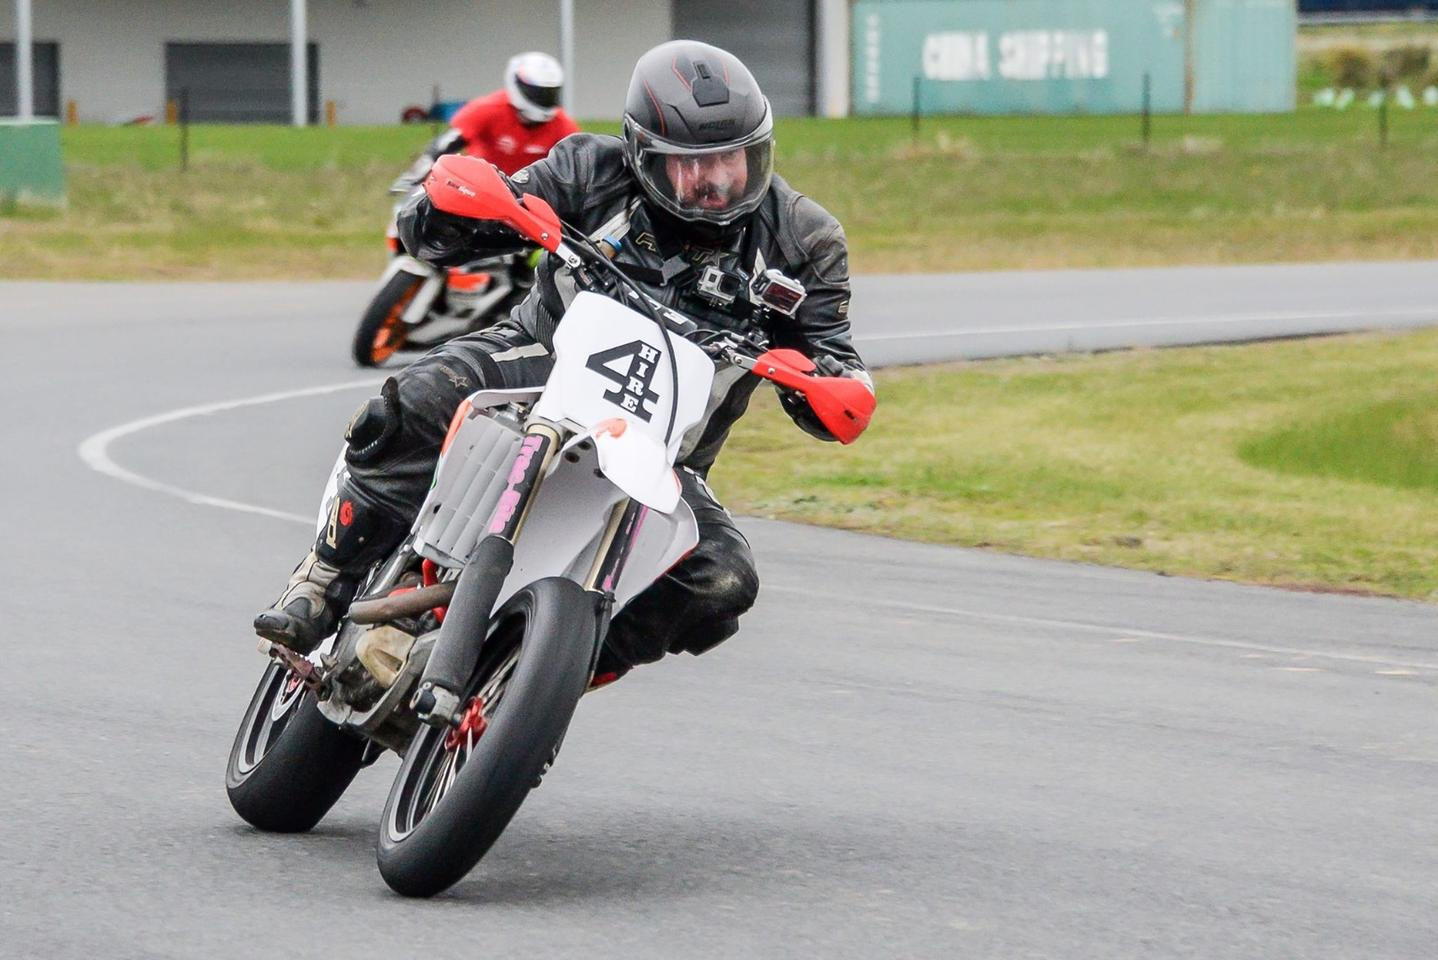 Loz on the CRF450R supermotard toward the end of the day